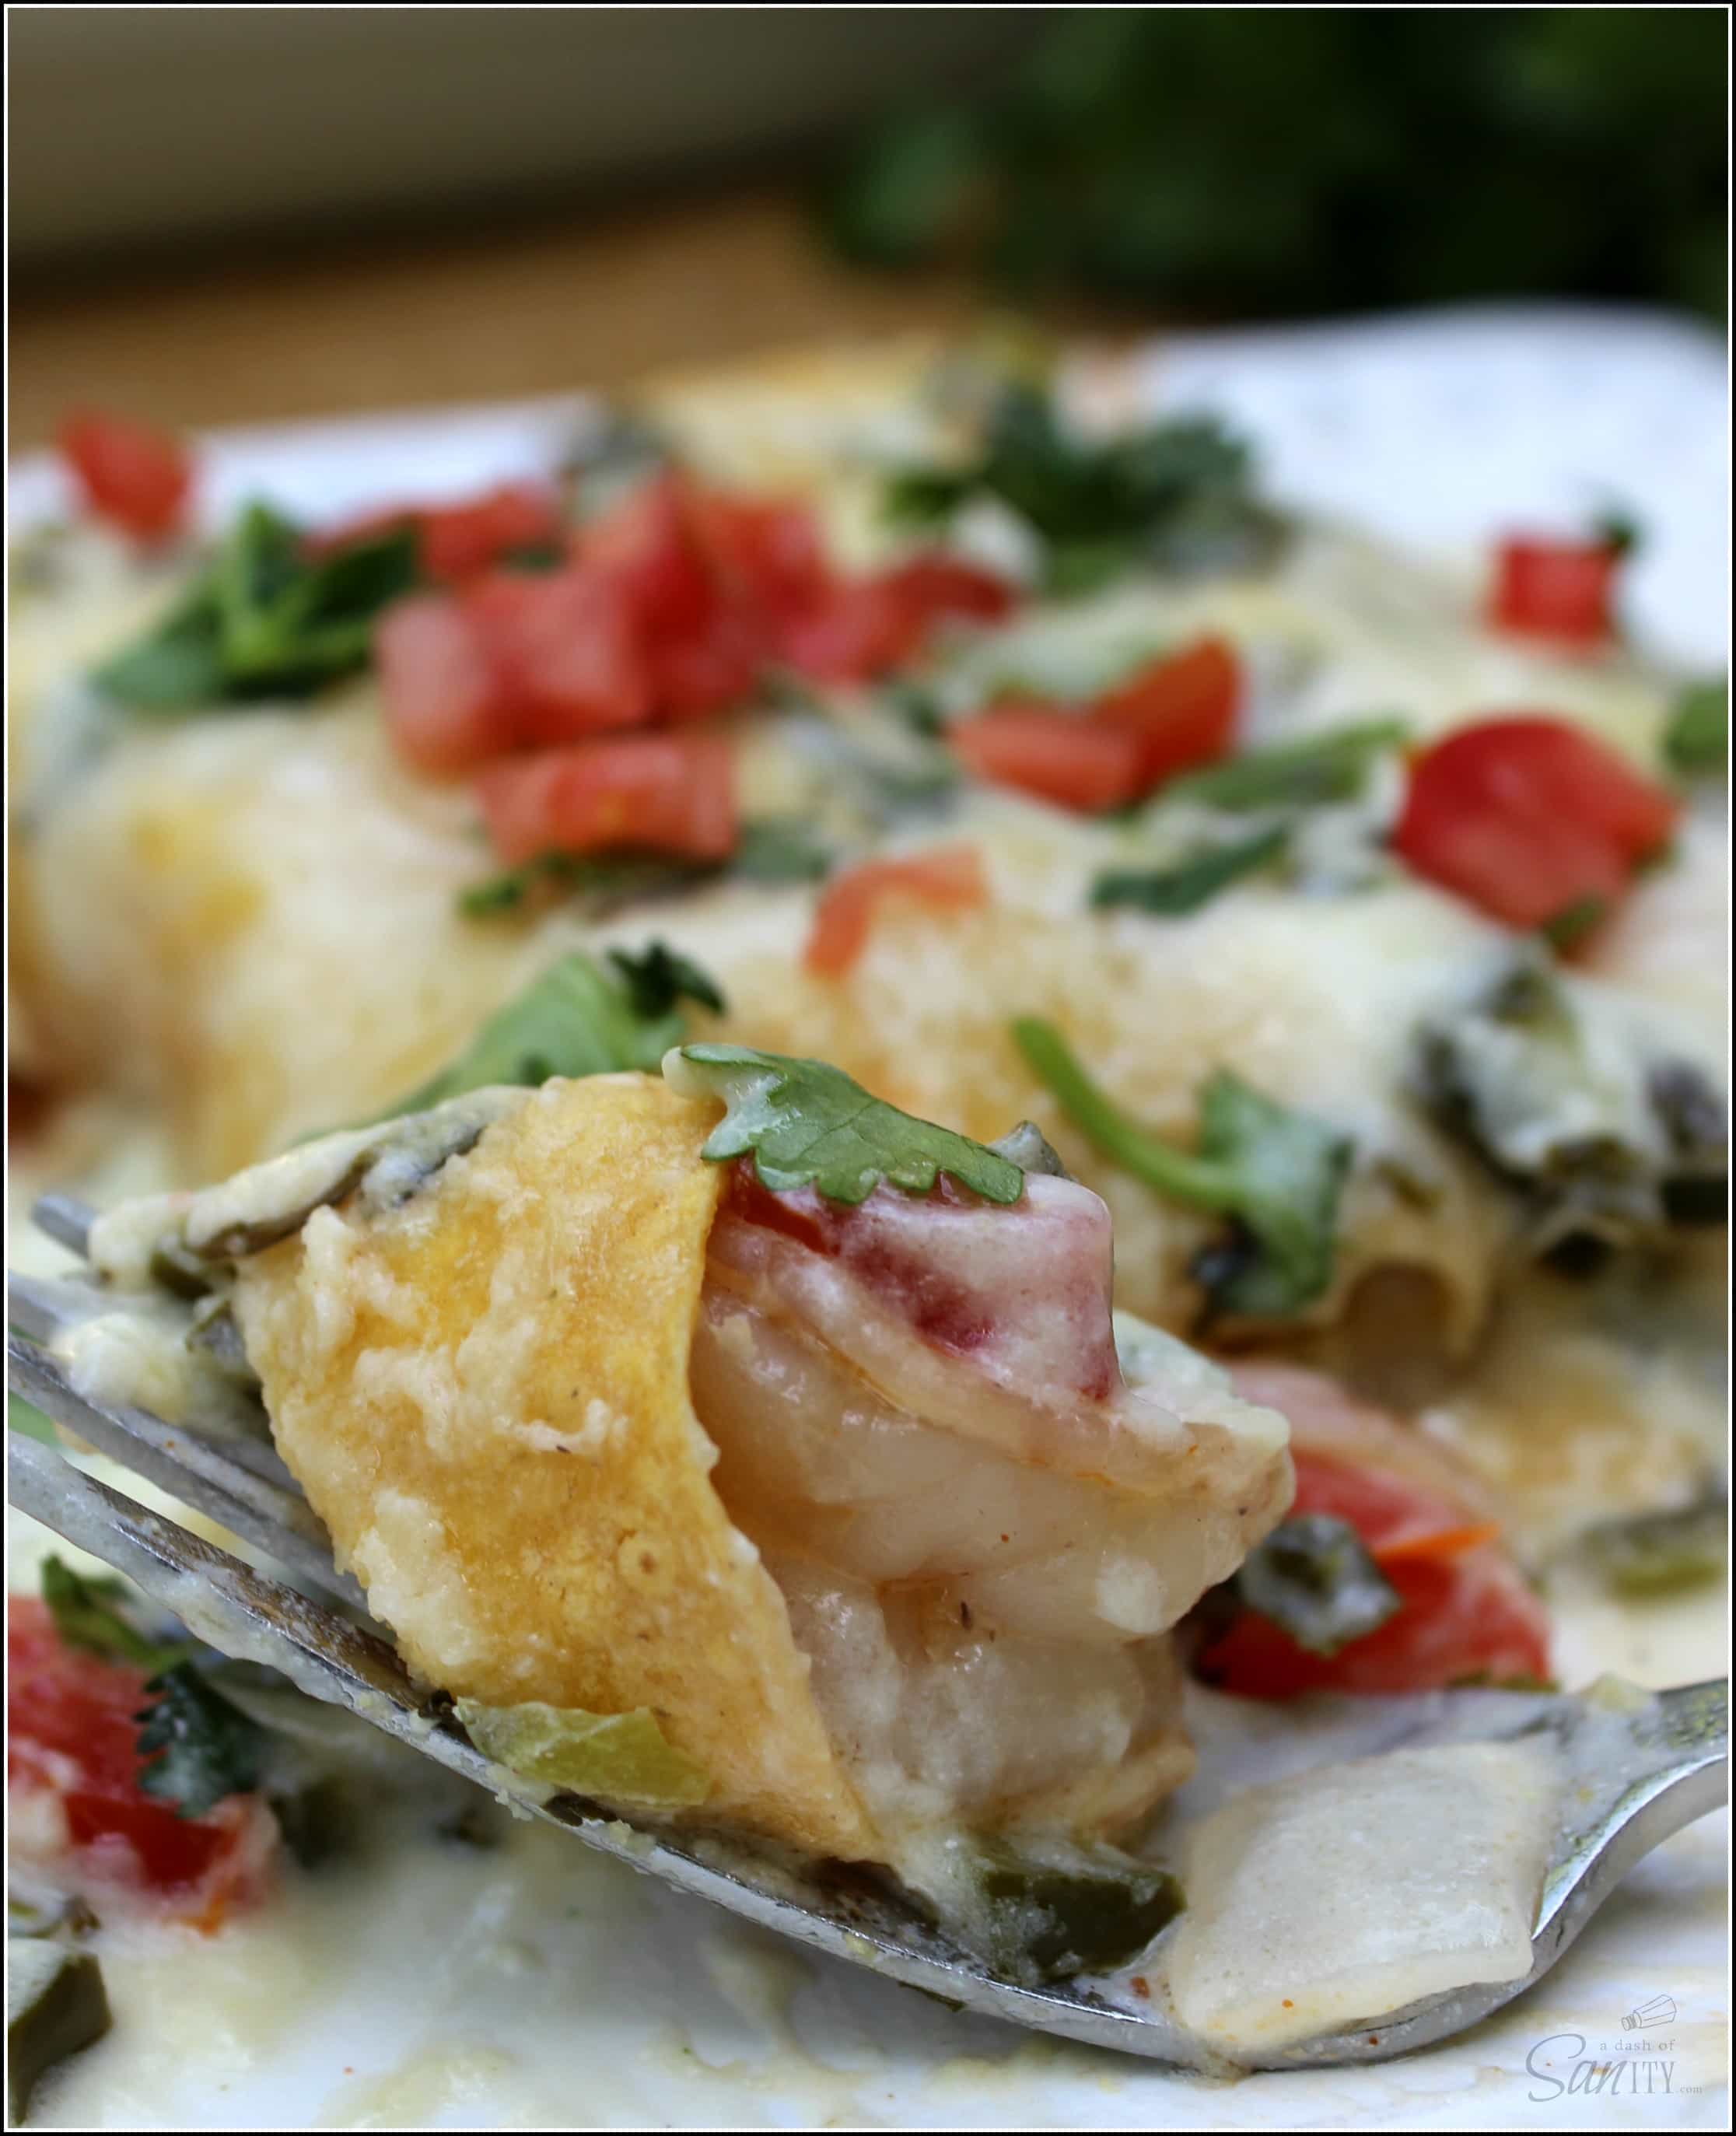 Try these Shrimp Enchiladas with Poblano Cream Sauce. They are a light & refreshing twist on classic enchiladas smothered in a creamy homemade sauce.